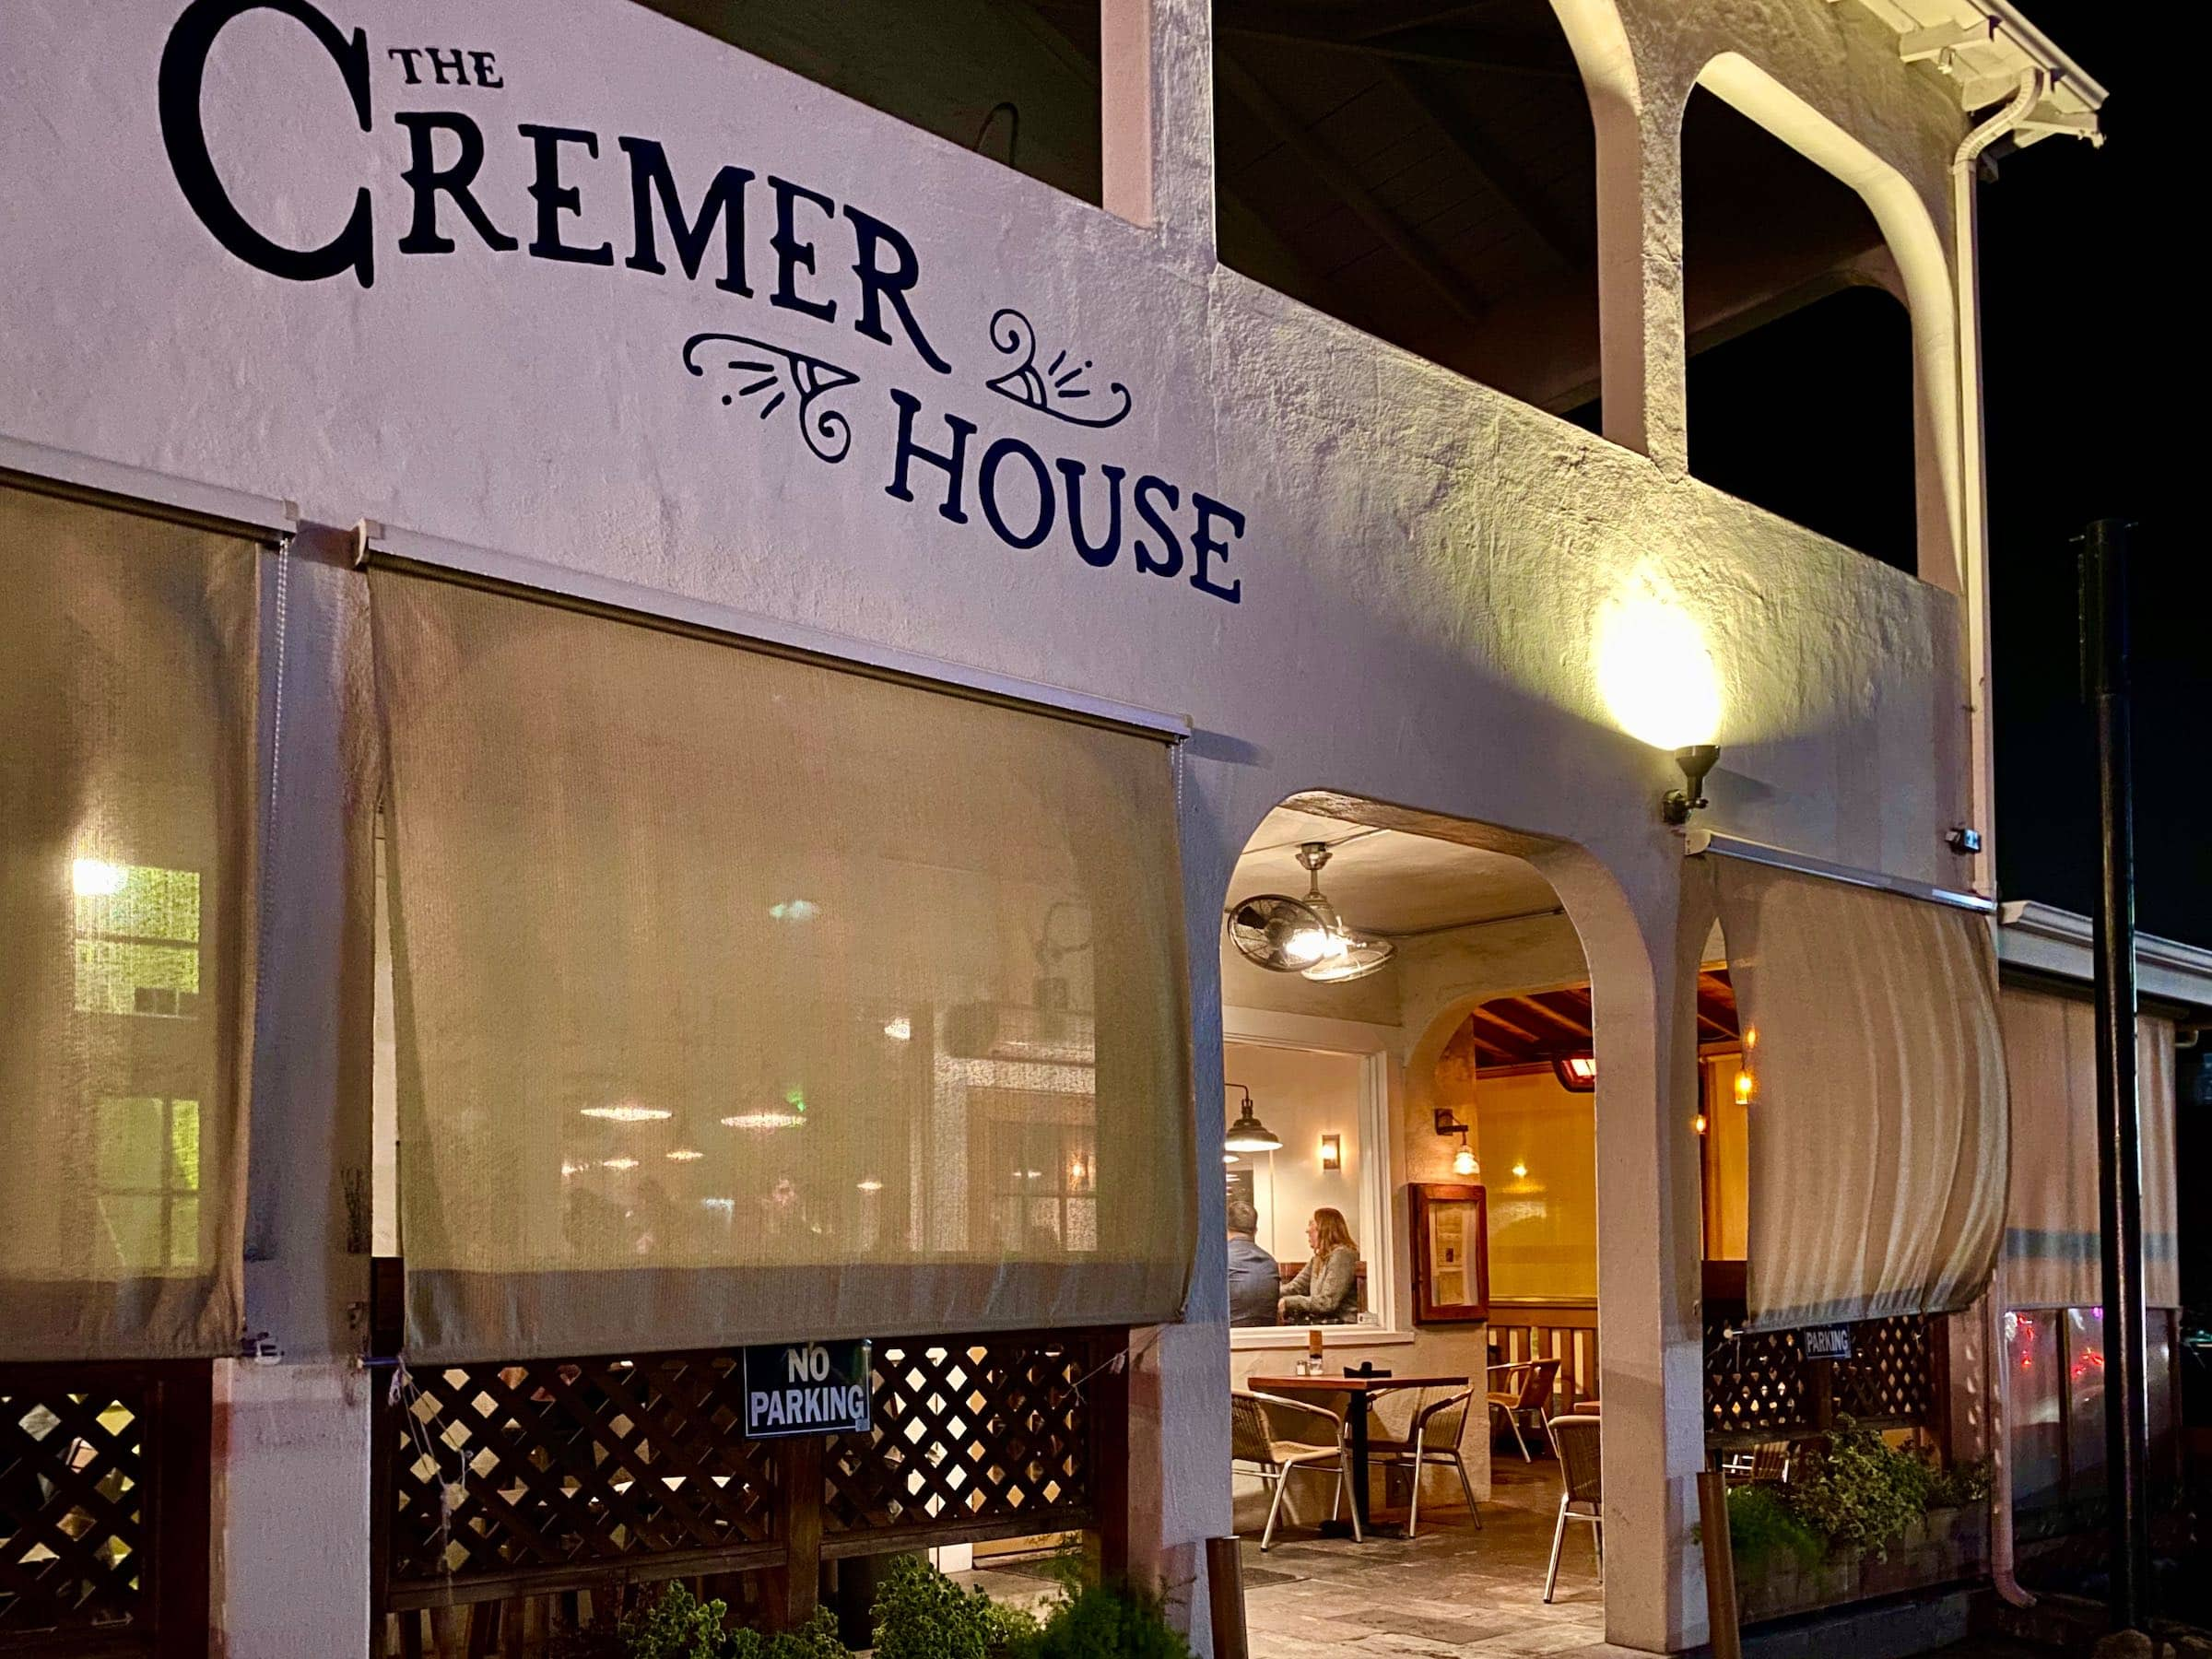 The Cremer House